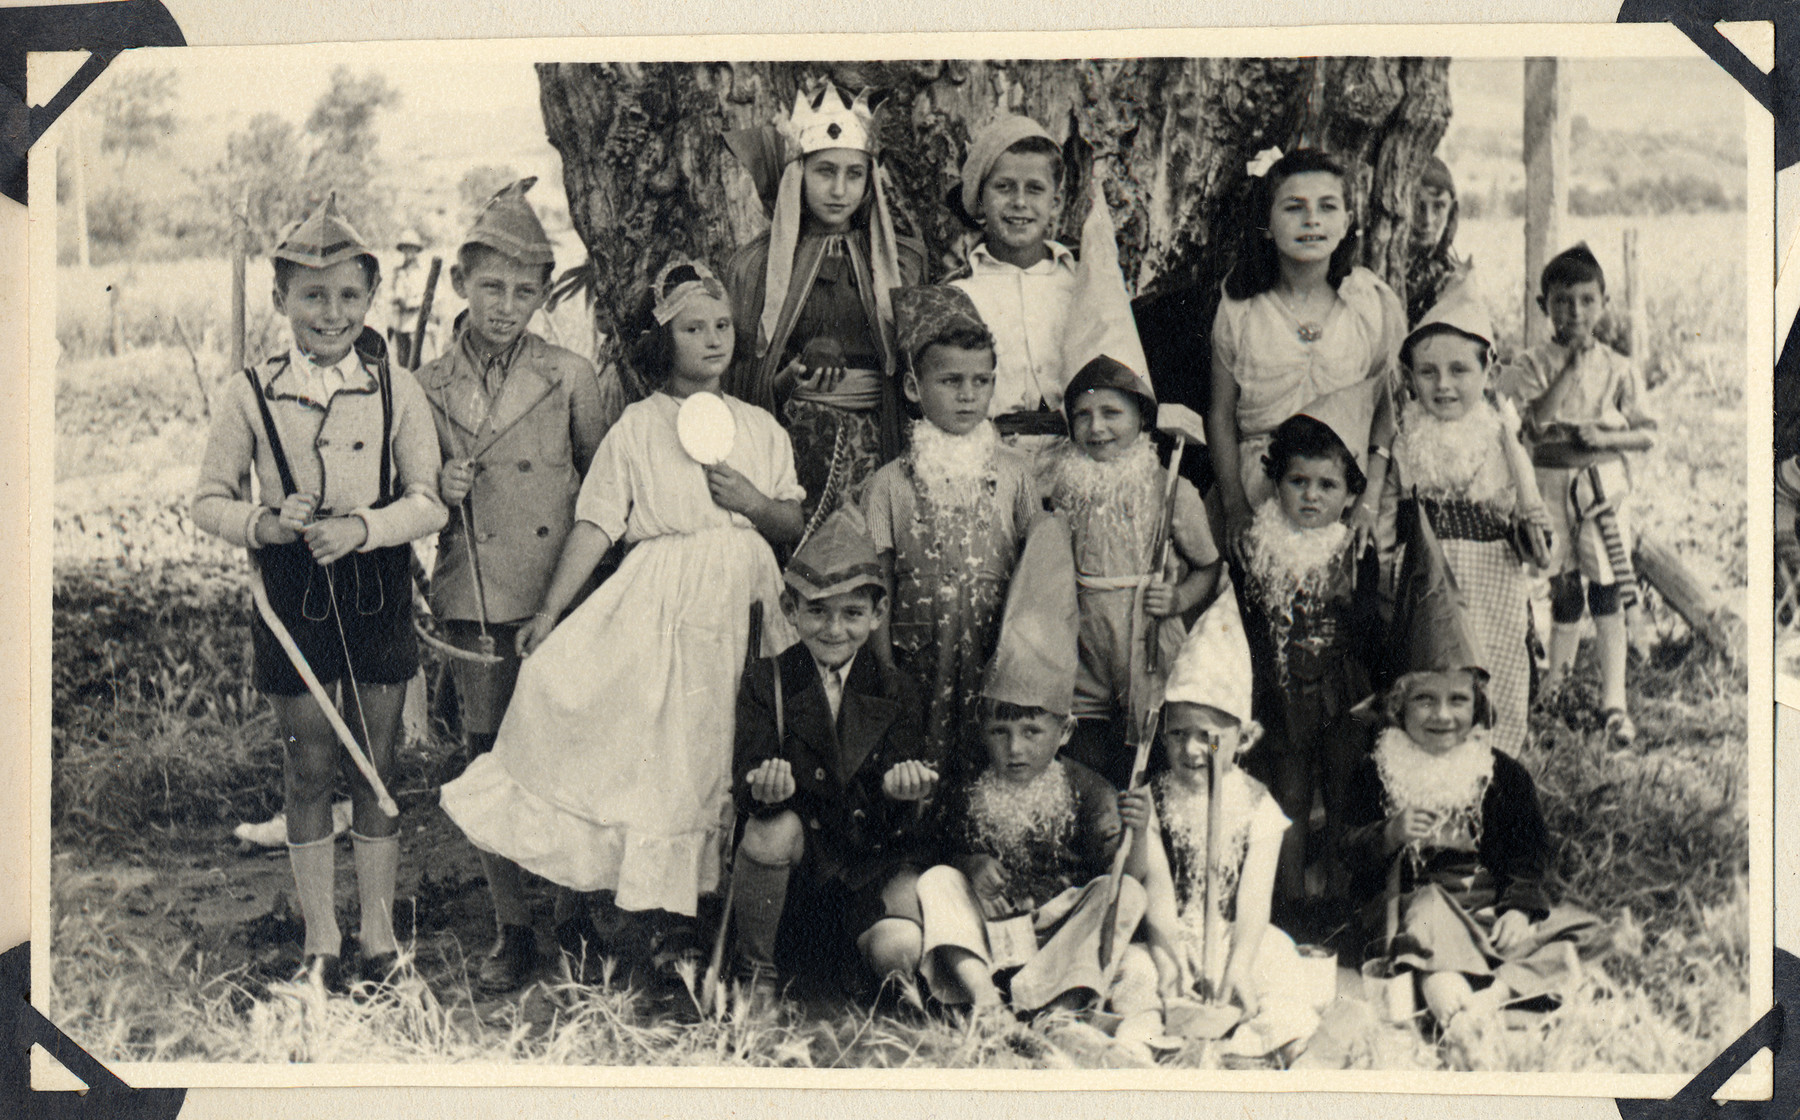 Children in the Ferramonti internment camp pose in their costumes for a play of Snow White written by Hella Mayer and performed in the camp.